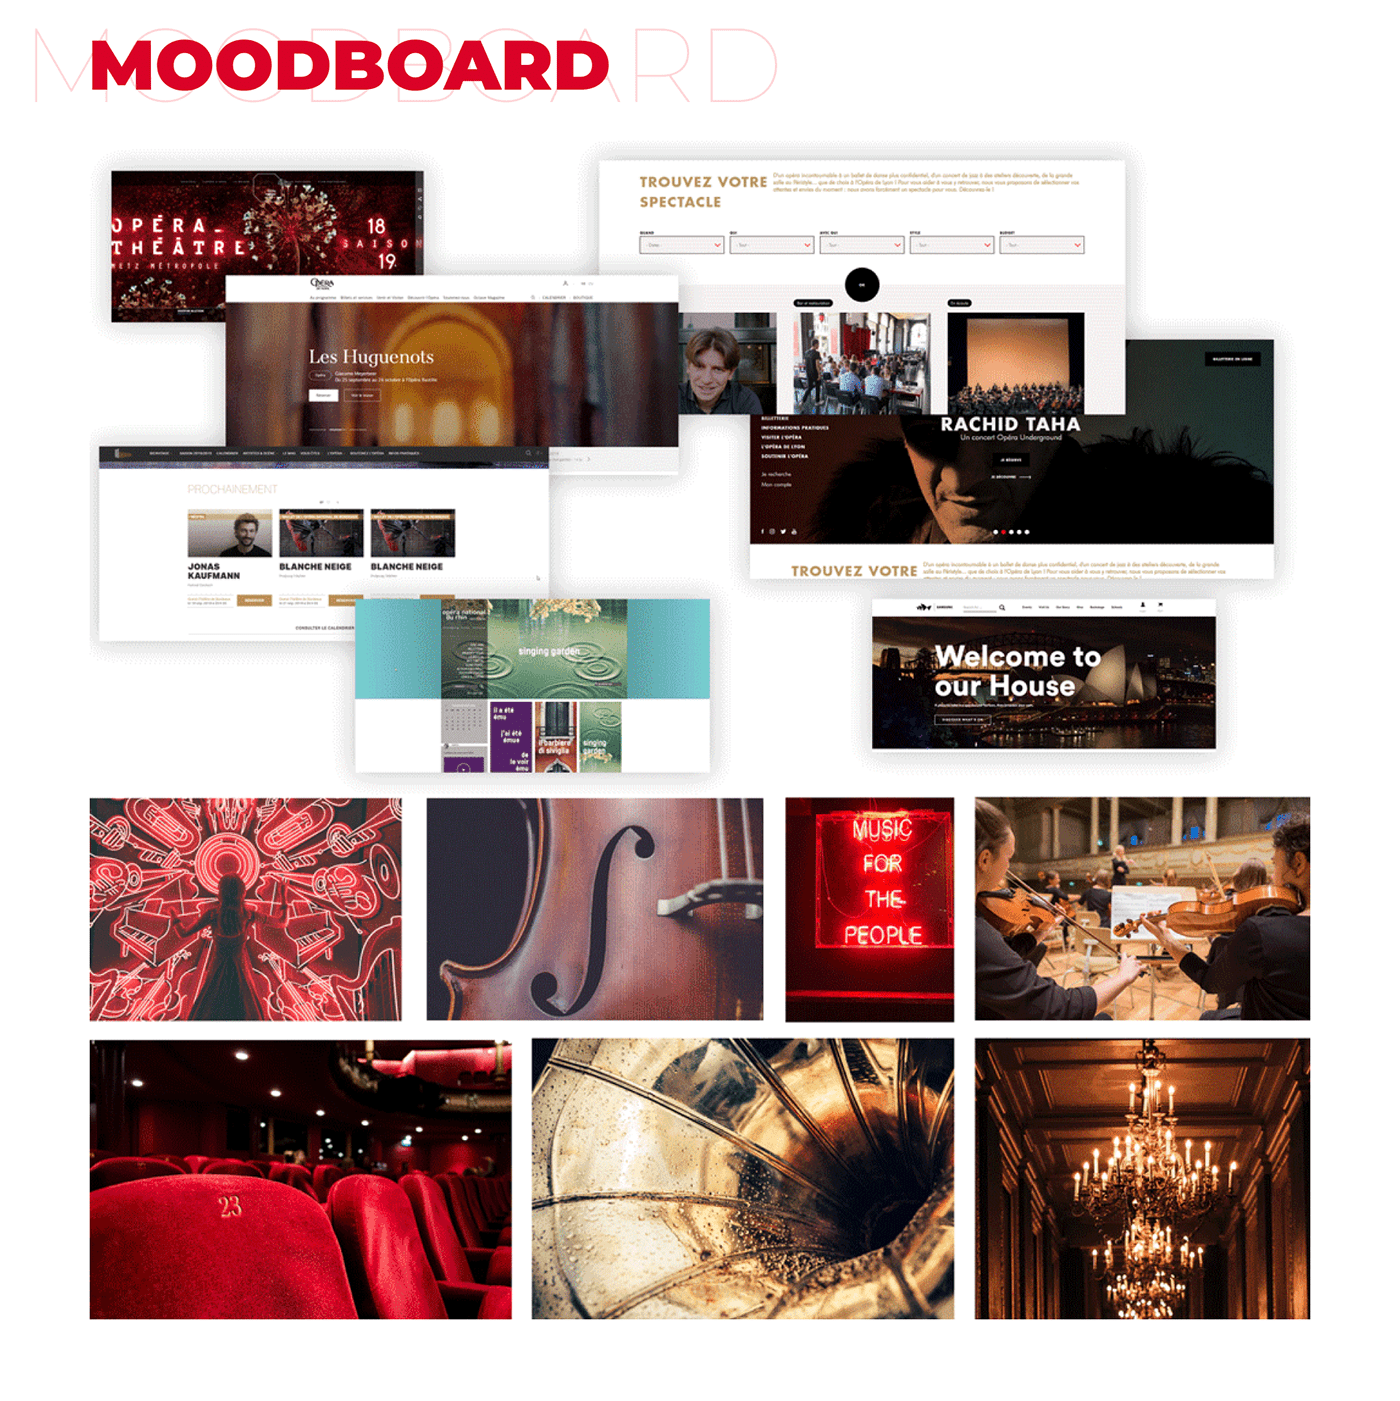 Moodboard for Opera House Website : Inspiration photos and websites